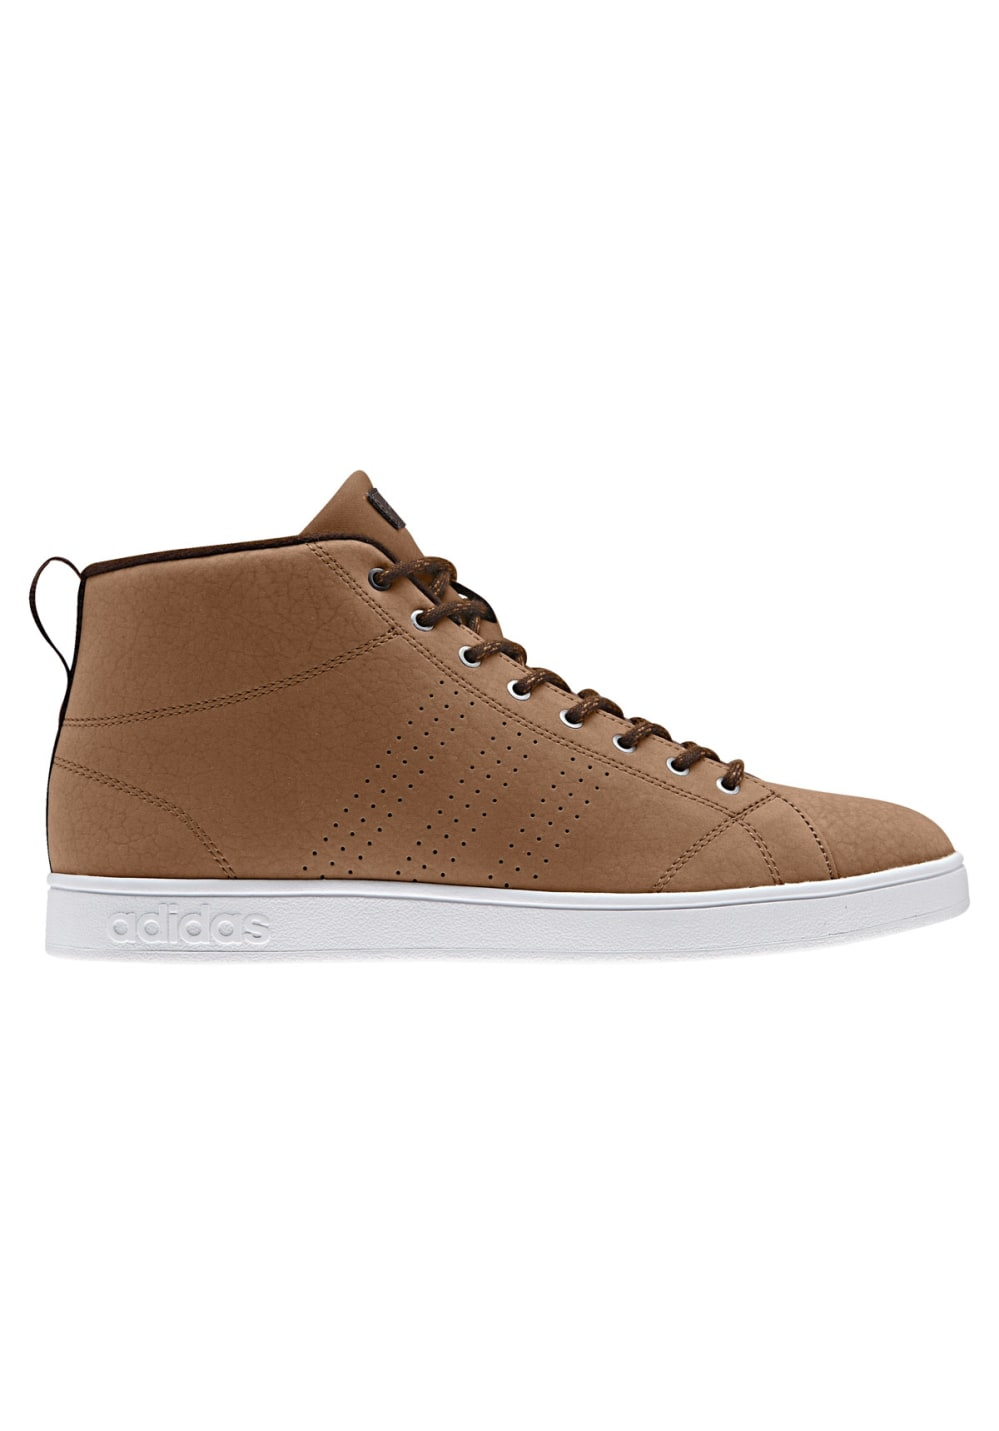 Adidas NEO Advantage Clean Winter Mid Hommes Accessoires running